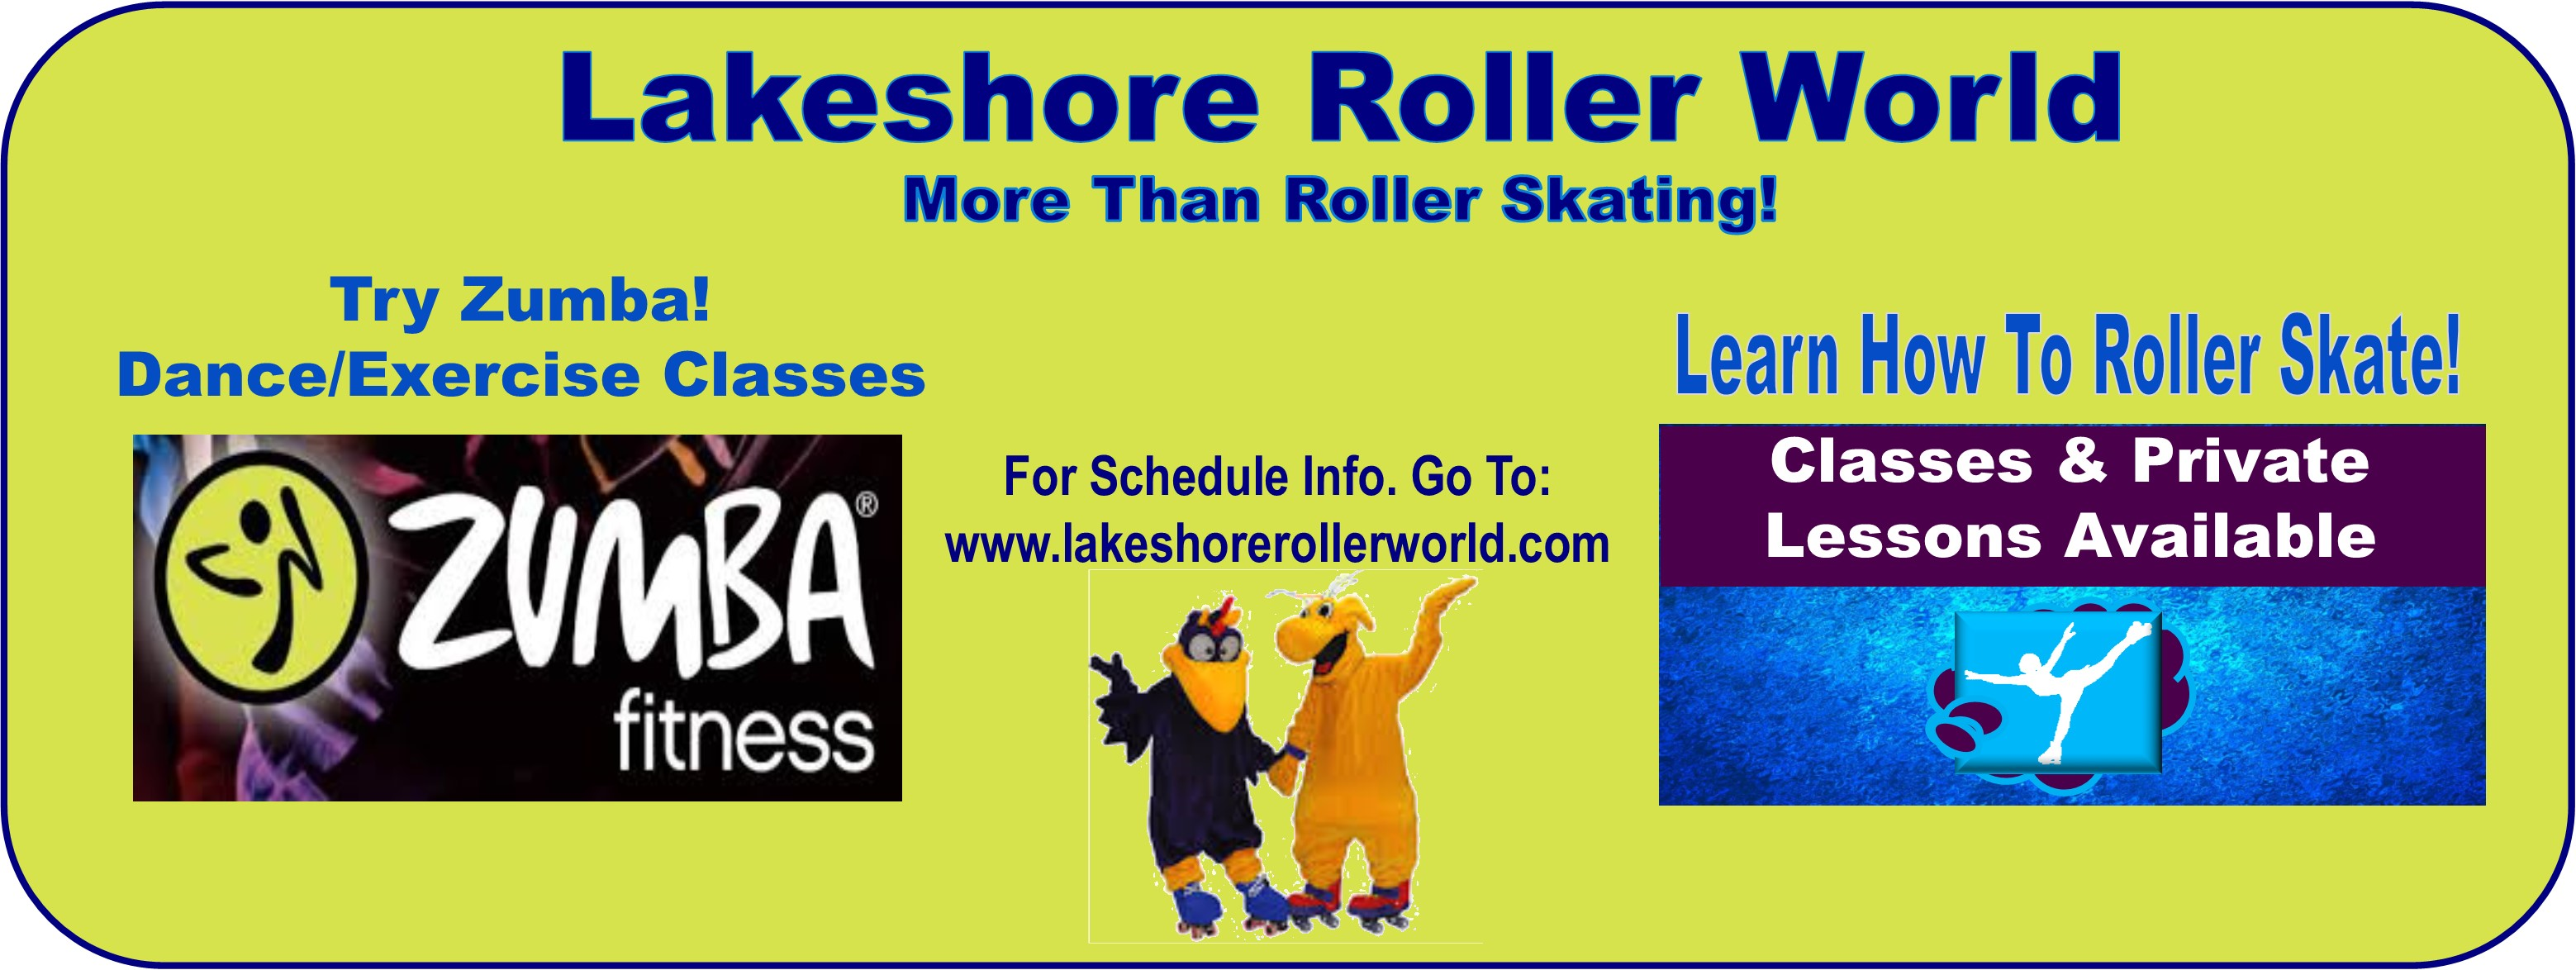 lrw-facebook-cover-zumba-and-skate-classes-jpg